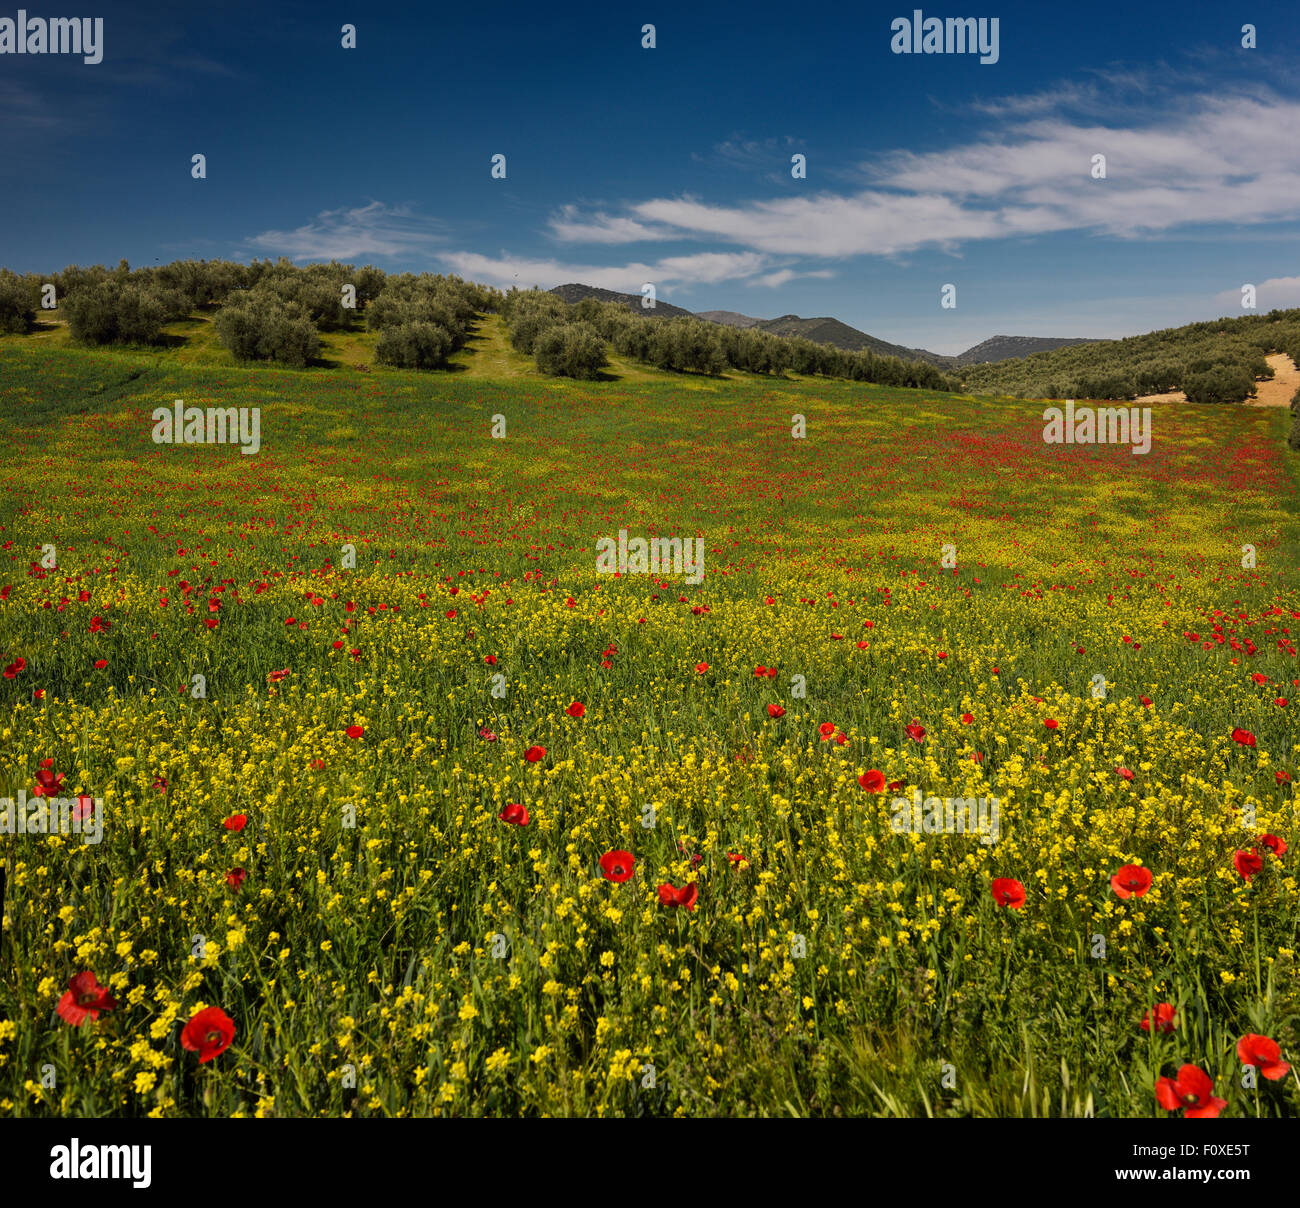 Fallow field of Red Poppies and Yellow Rocket weeds below Olive grove at Puerto Lope Spain Stock Photo